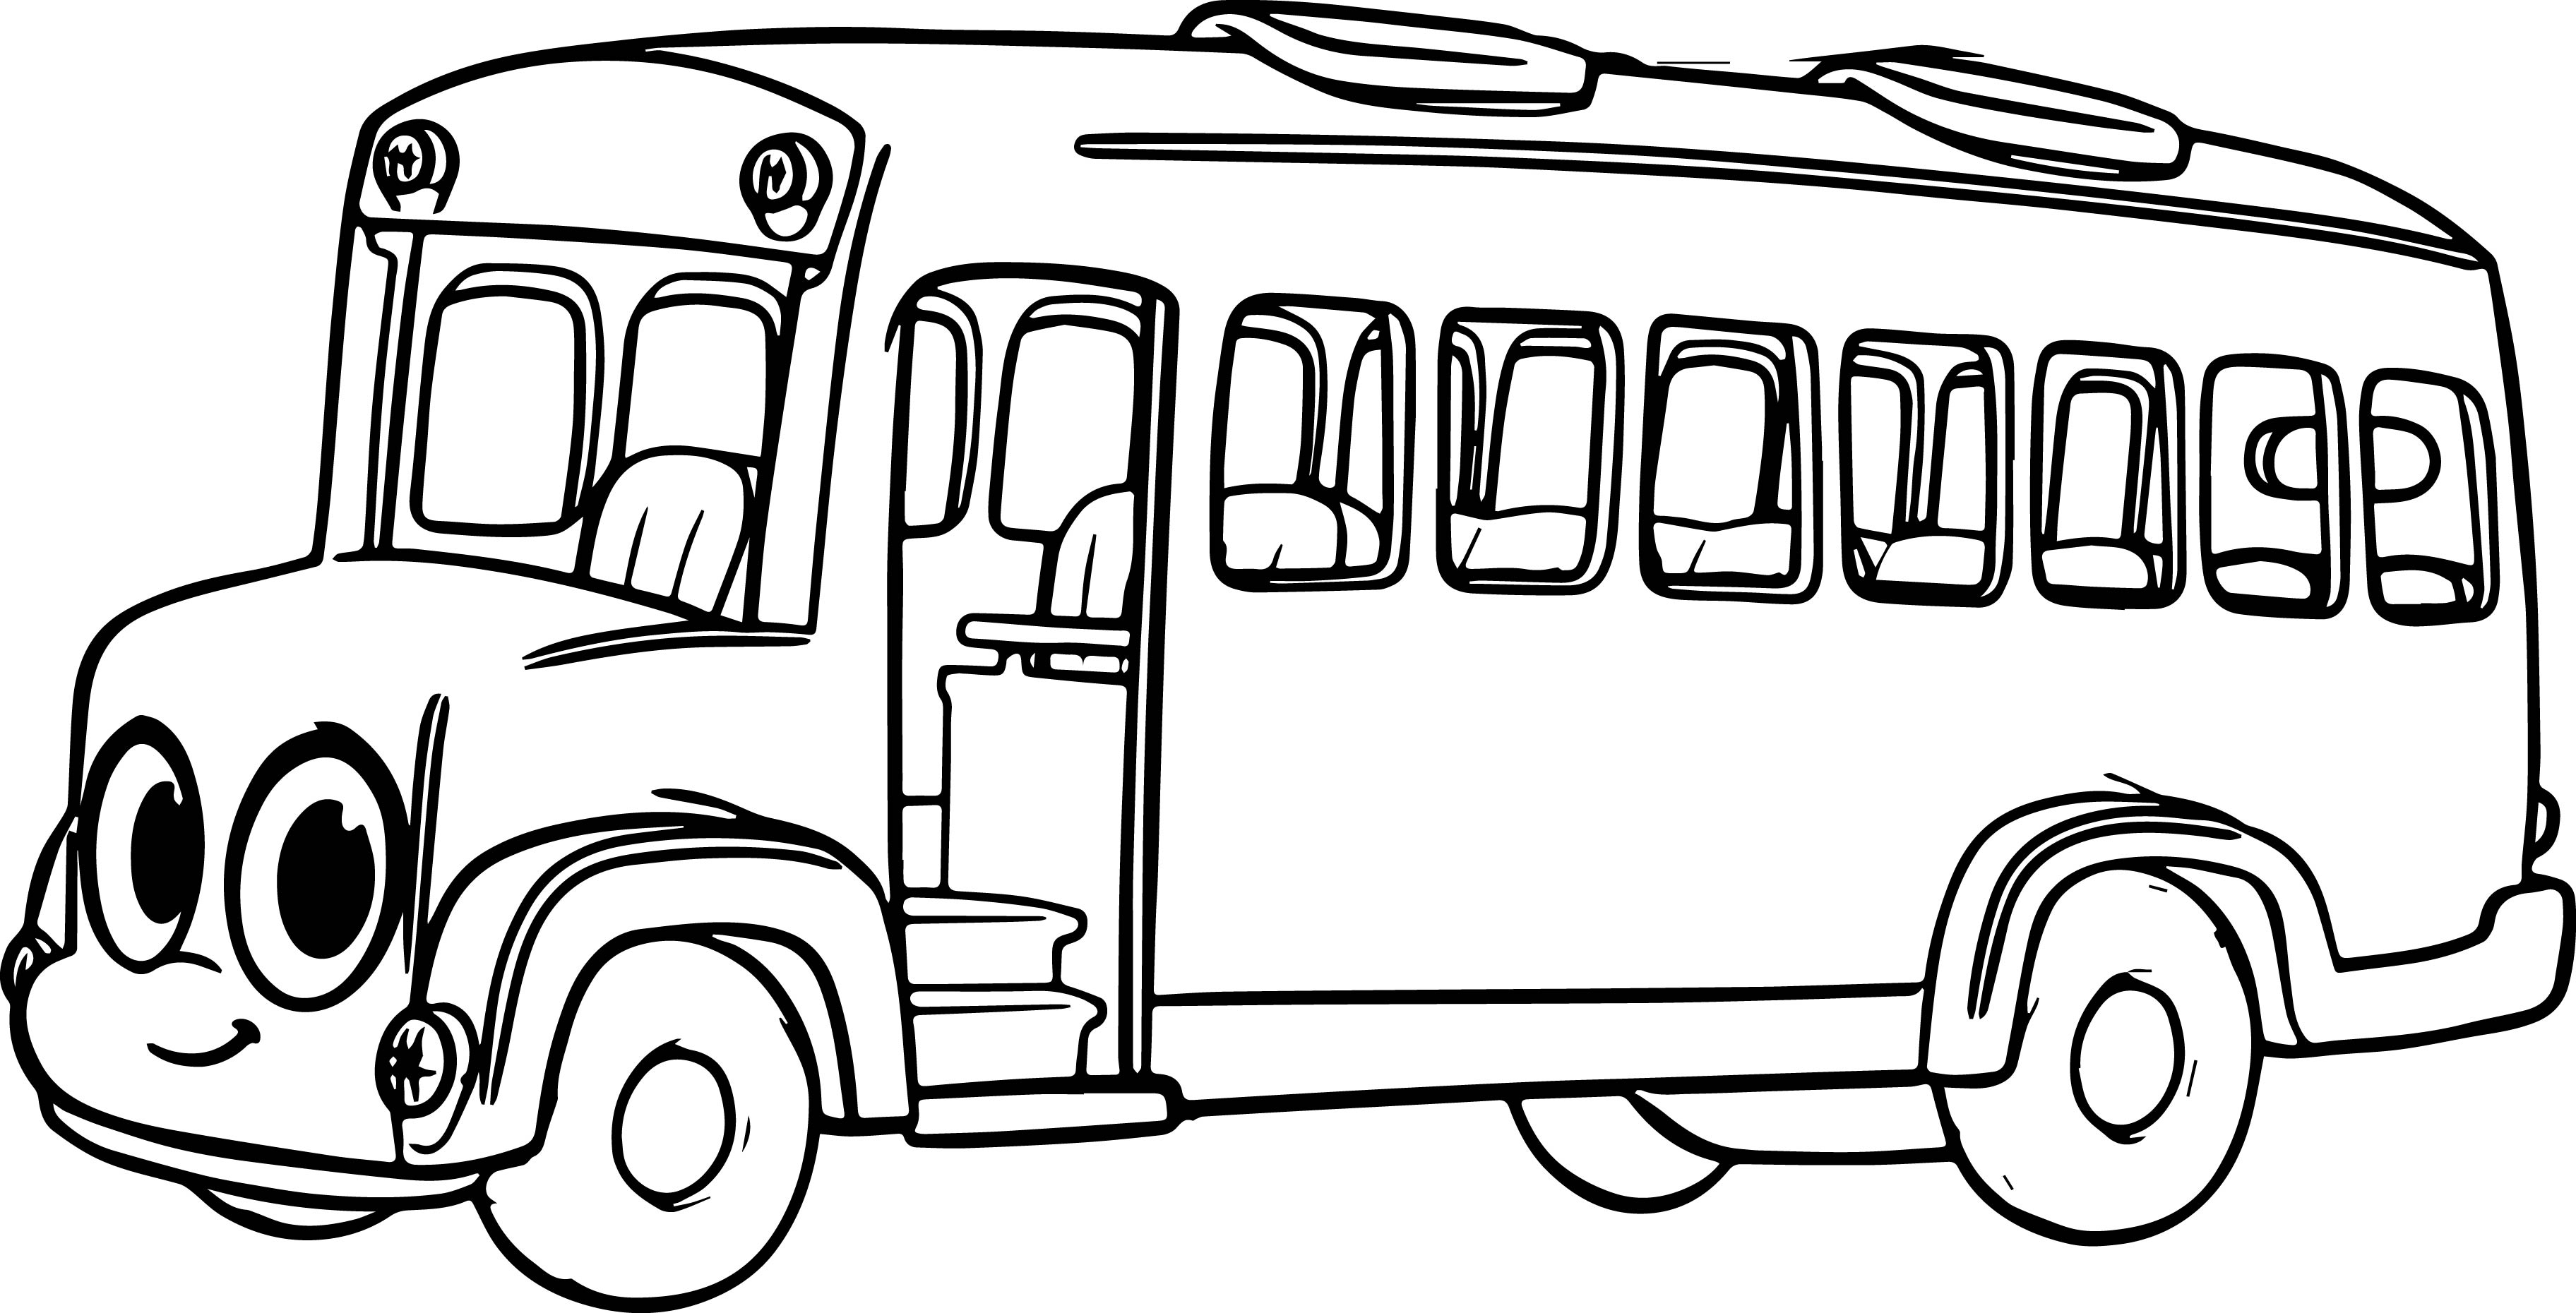 City Bus Coloring Page At Getcolorings